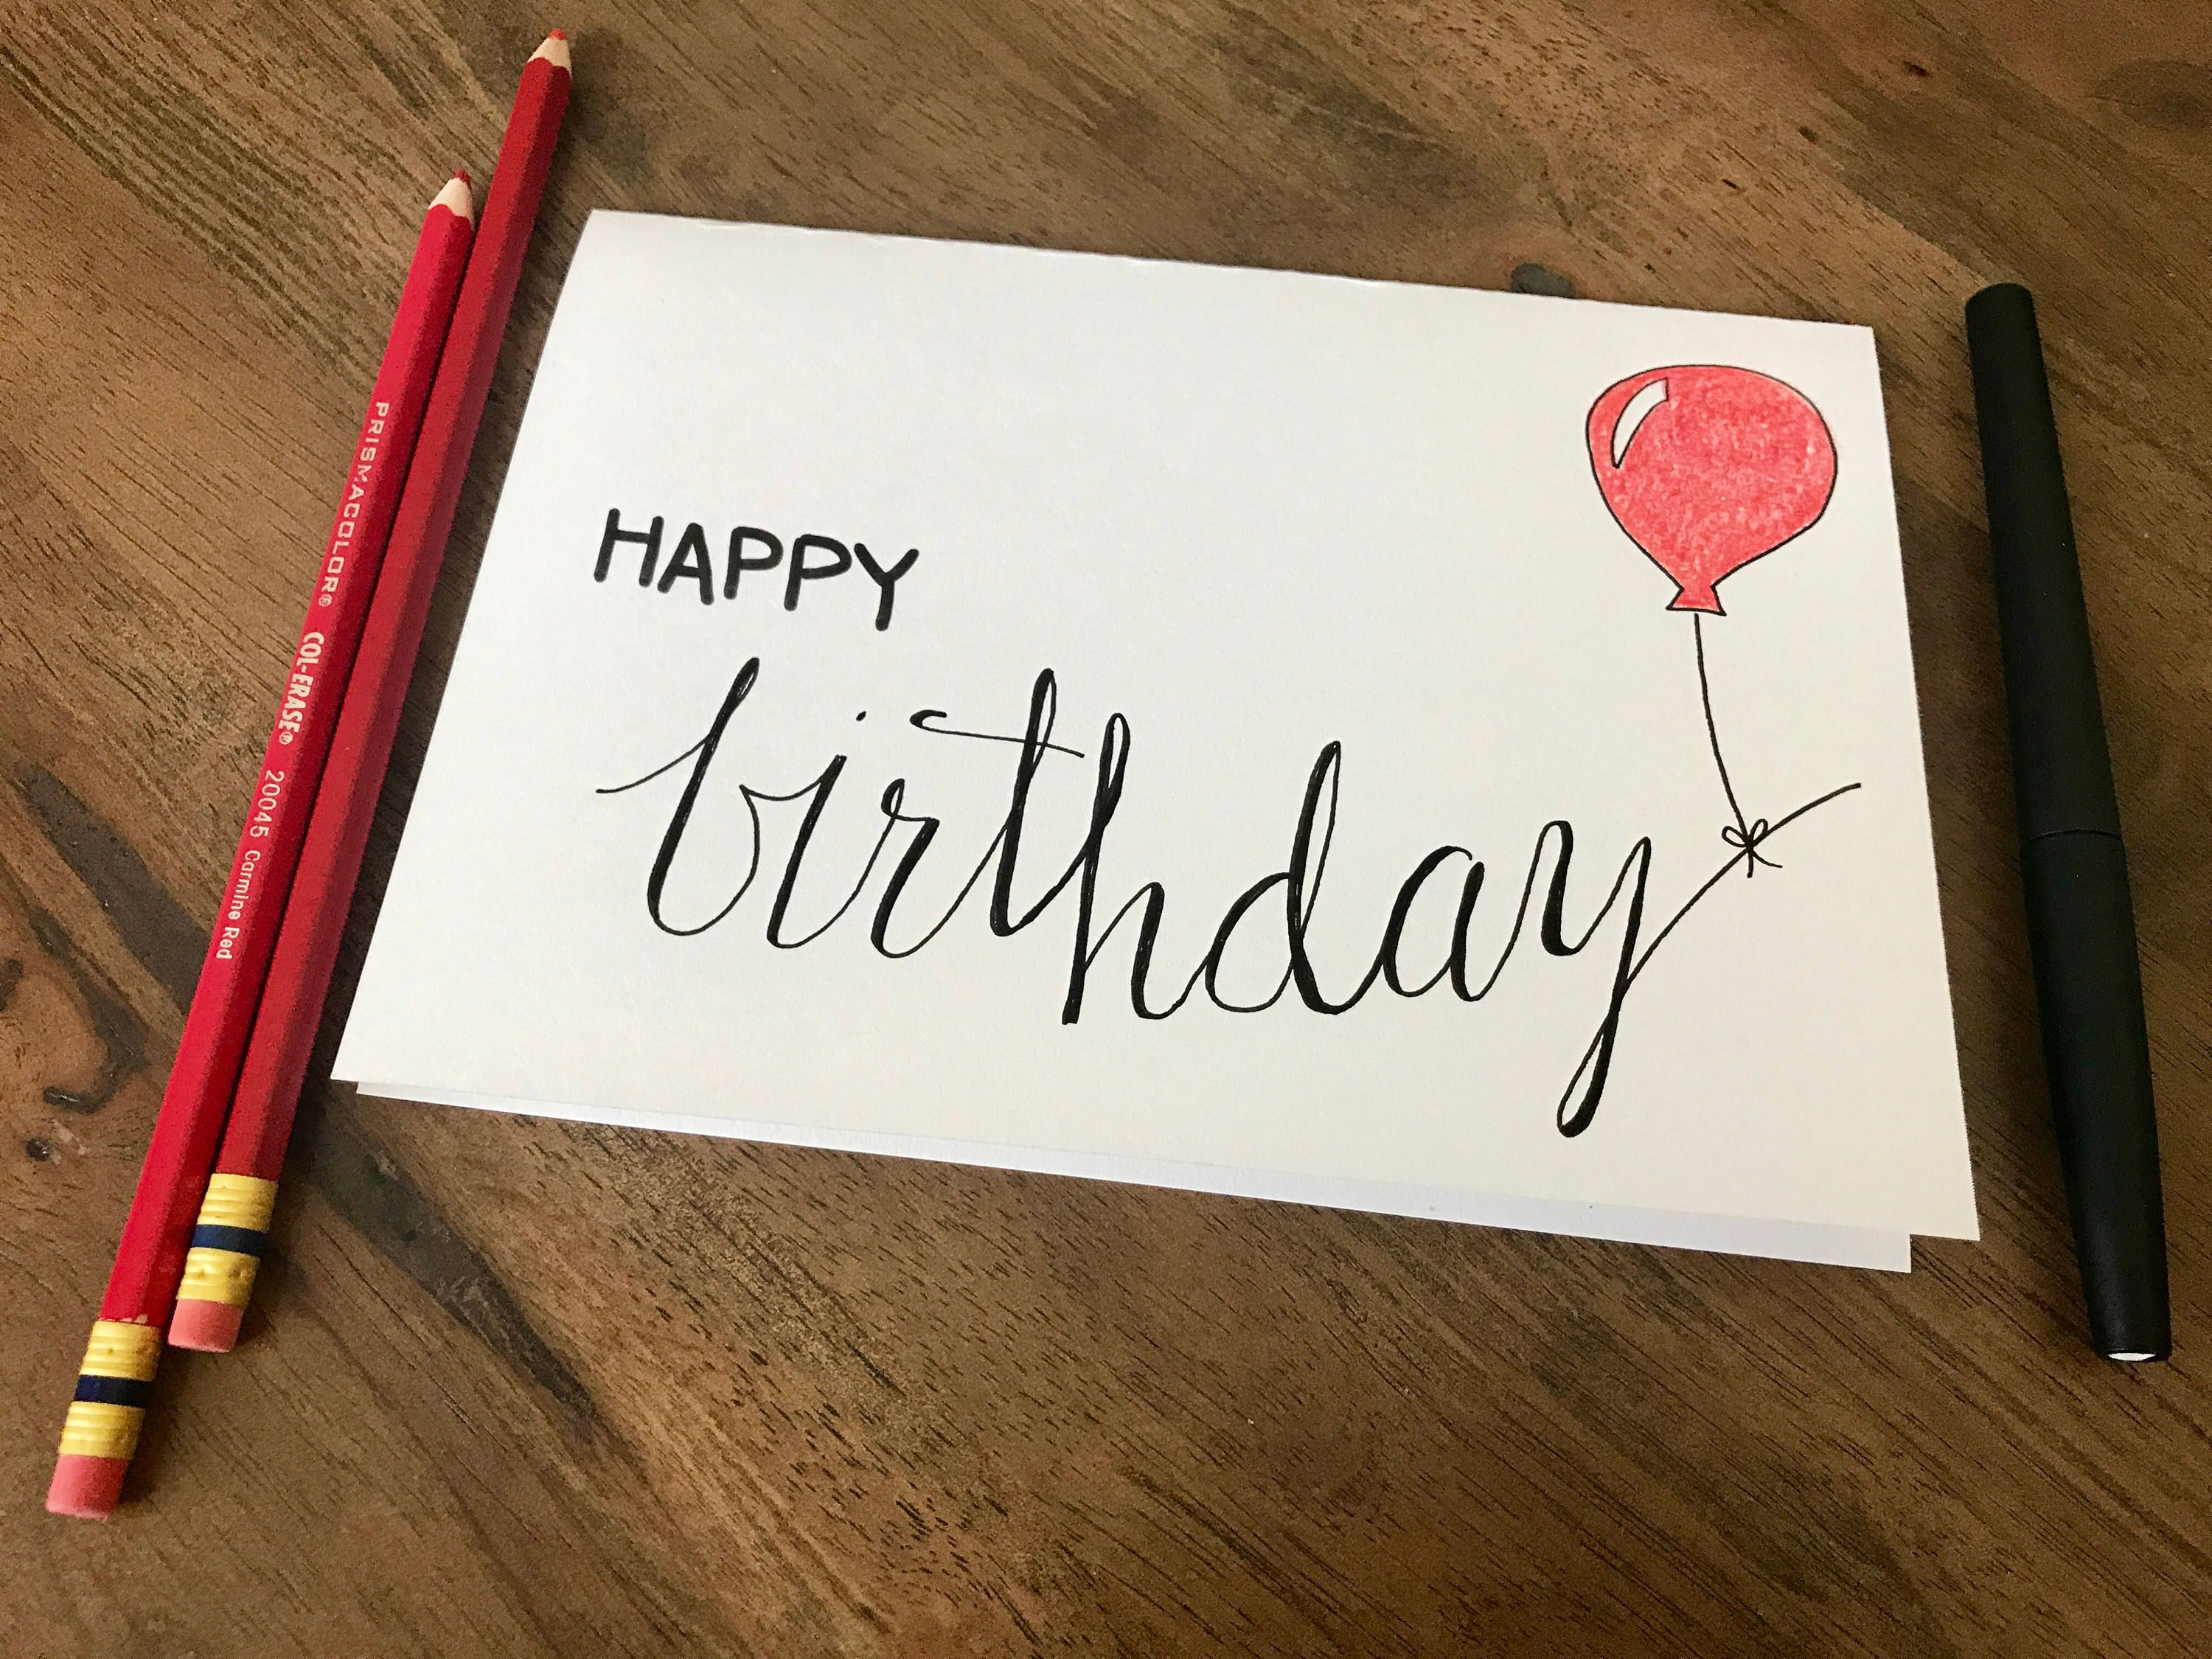 This Is A Simple 5x7 Card On 98 Lb Mix Media Stock It Comes With An Envelope For Convenience I Use A Variety Birthday Cards Happy Birthday Balloons Birthday